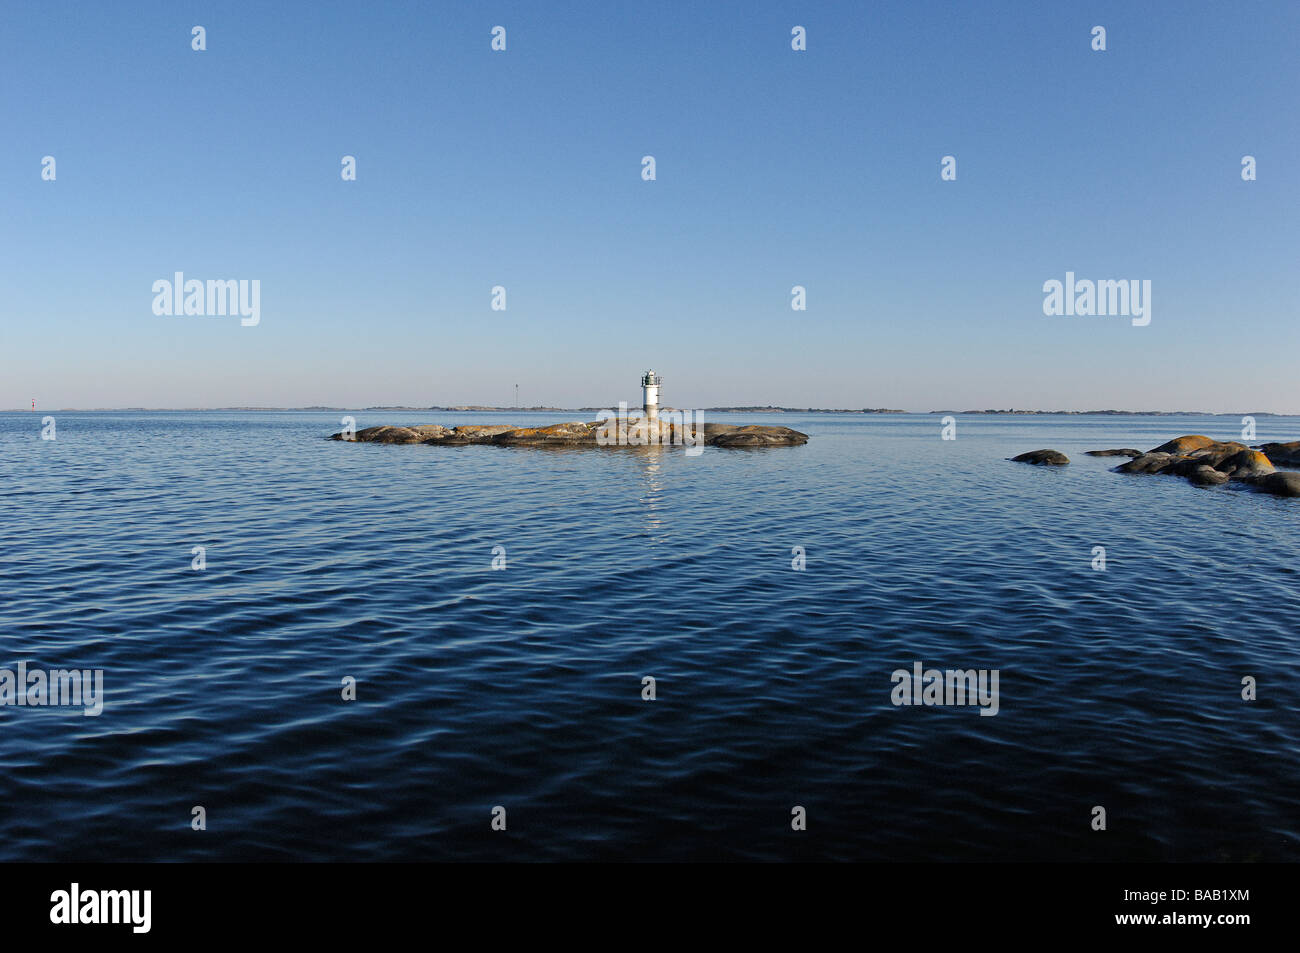 A lighthouse, Stockholm archipelago, Sweden. - Stock Image